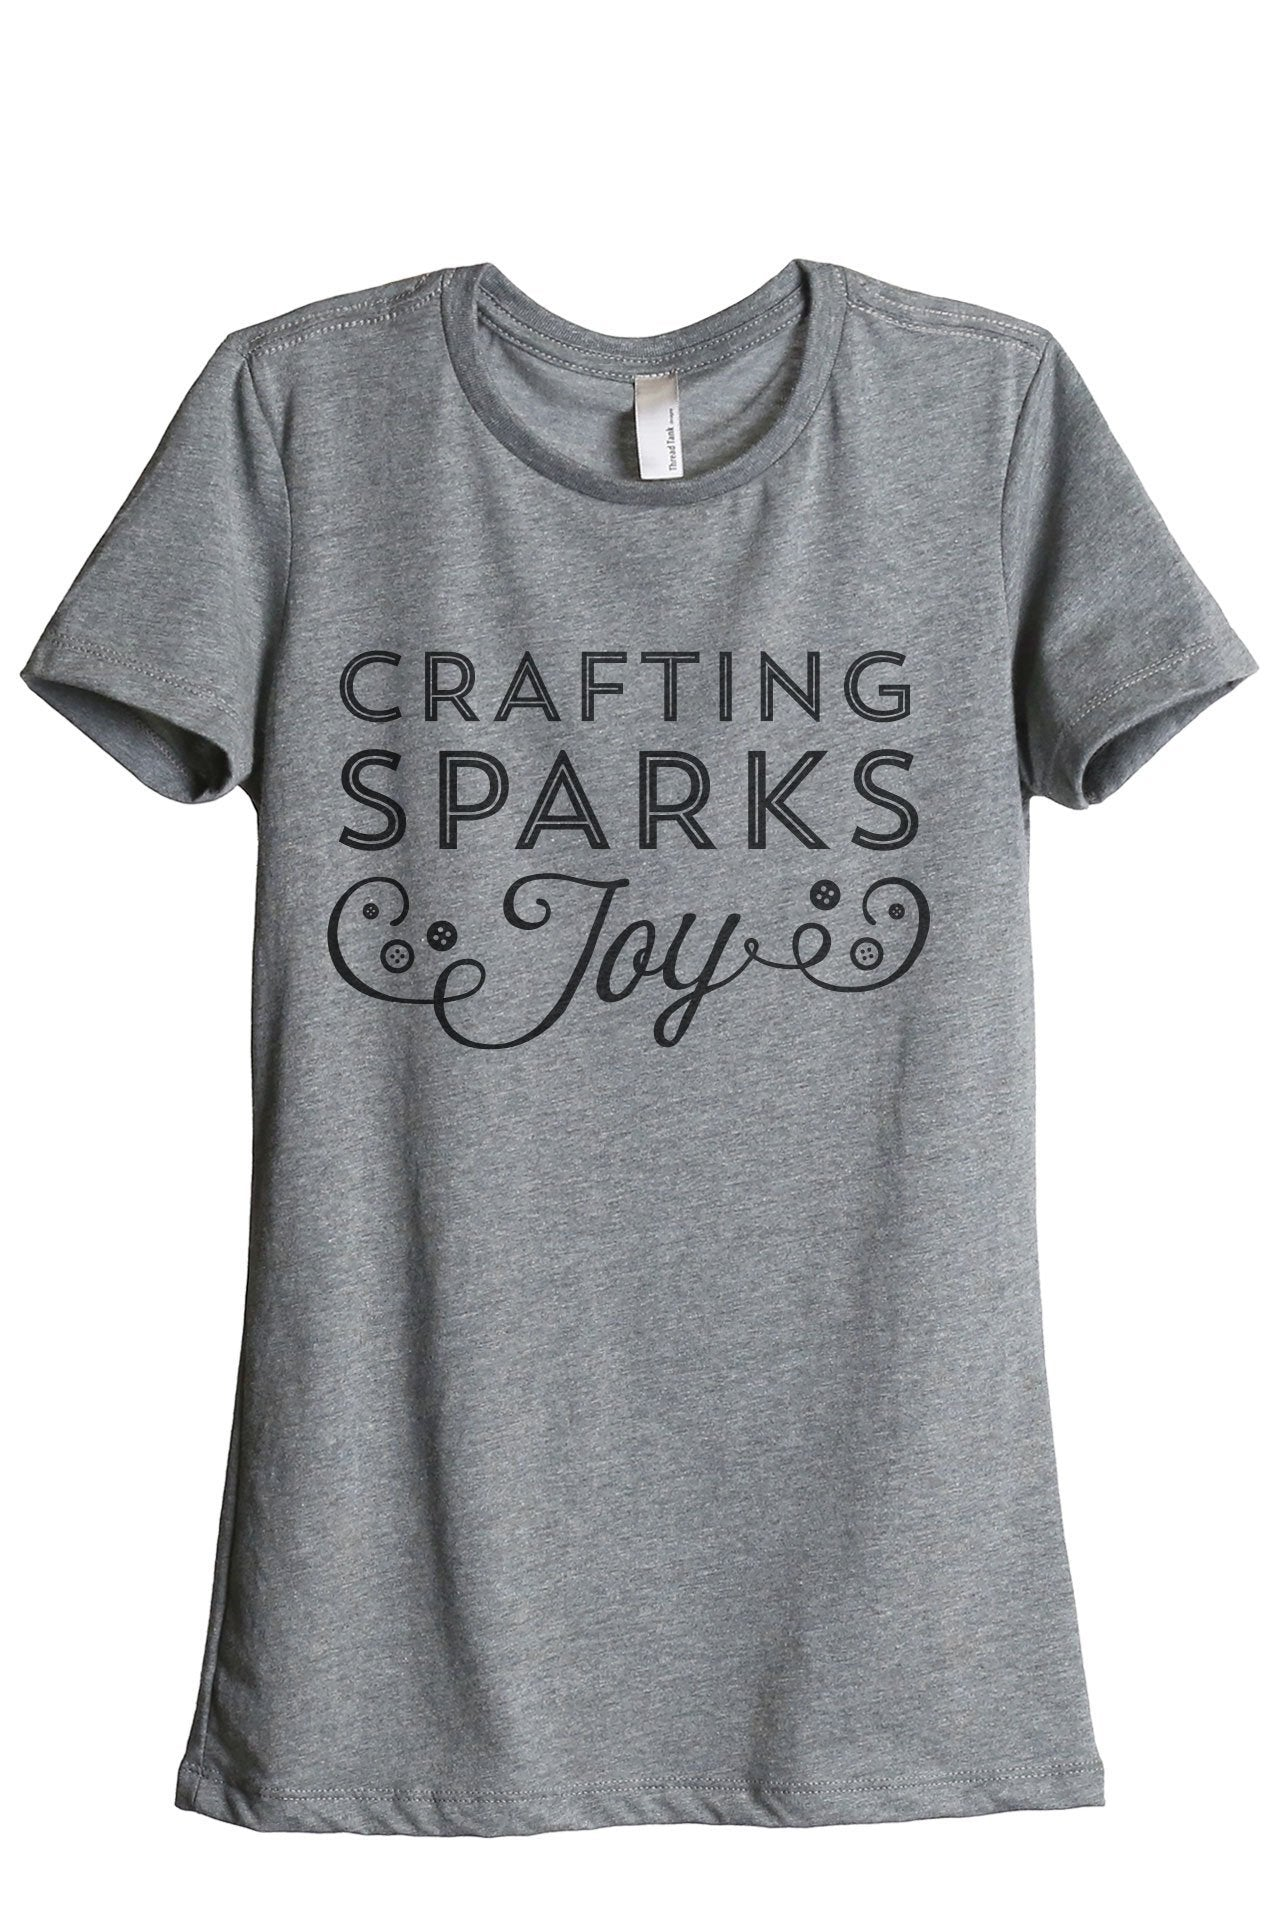 Crafting Sparks Joy Women's Relaxed Crewneck T-Shirt Top Tee Heather Grey